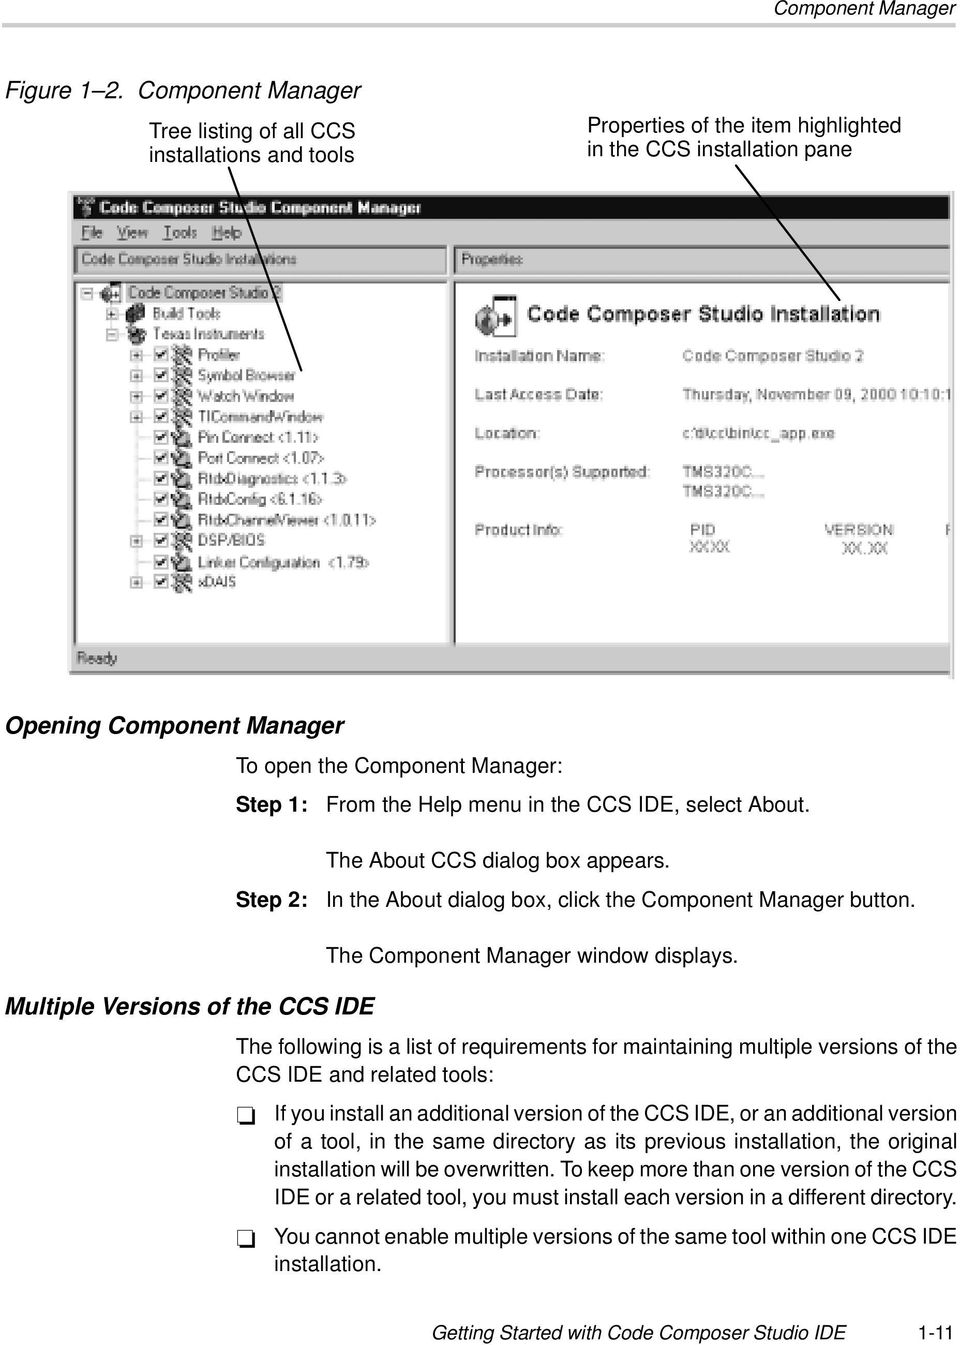 the Help menu in the CCS IDE, select About. Step 2: The About CCS dialog box appears. In the About dialog box, click the Component Manager button. The Component Manager window displays.